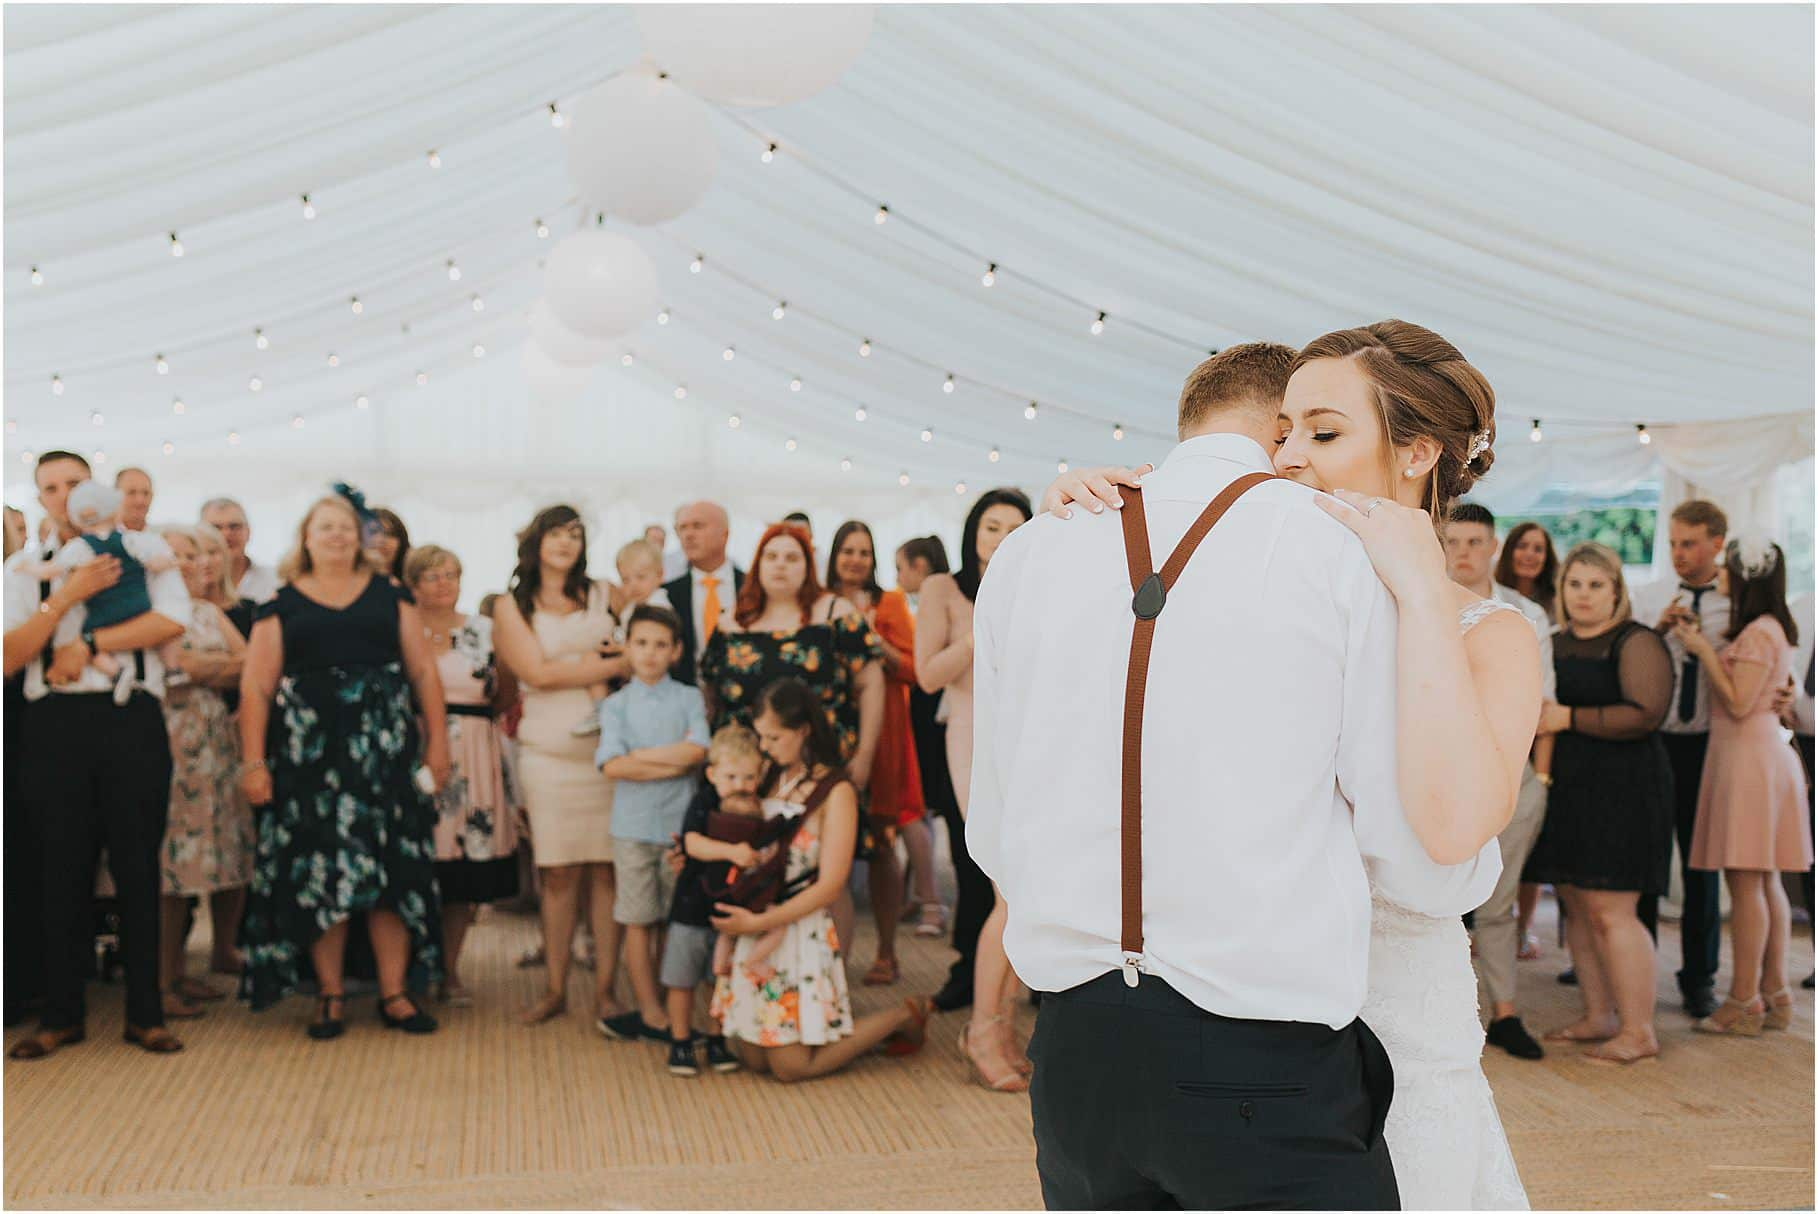 Rutland Weddings Exton Hall Exton Oakham Rutland Water Photographer 1114 - Mr and Mrs Barker // RUTLAND WEDDING